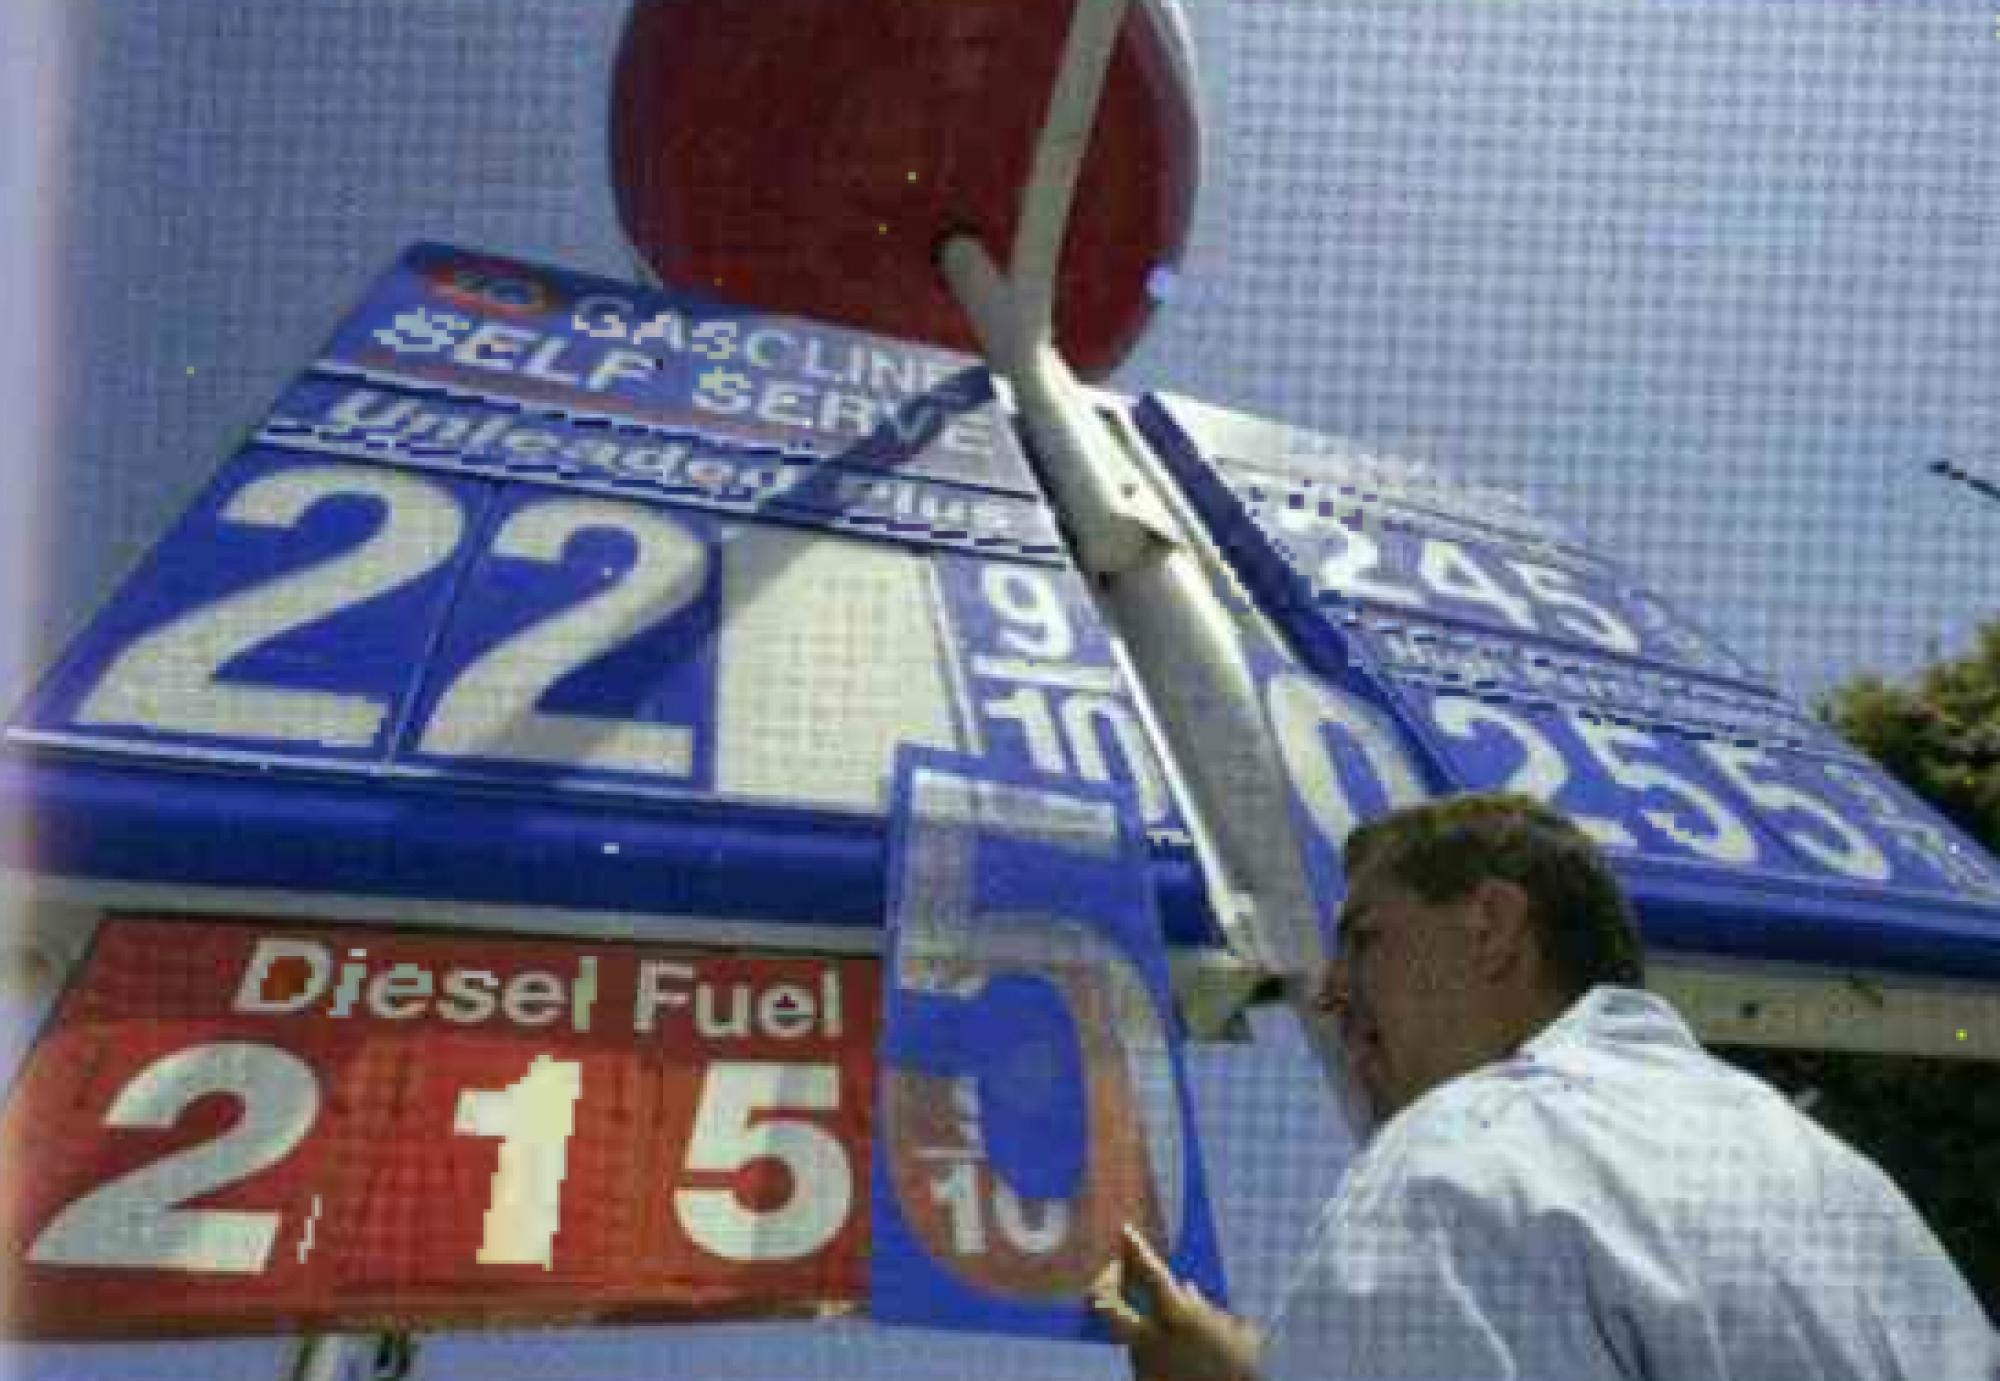 The price of gas in 2004? Below $2.30.